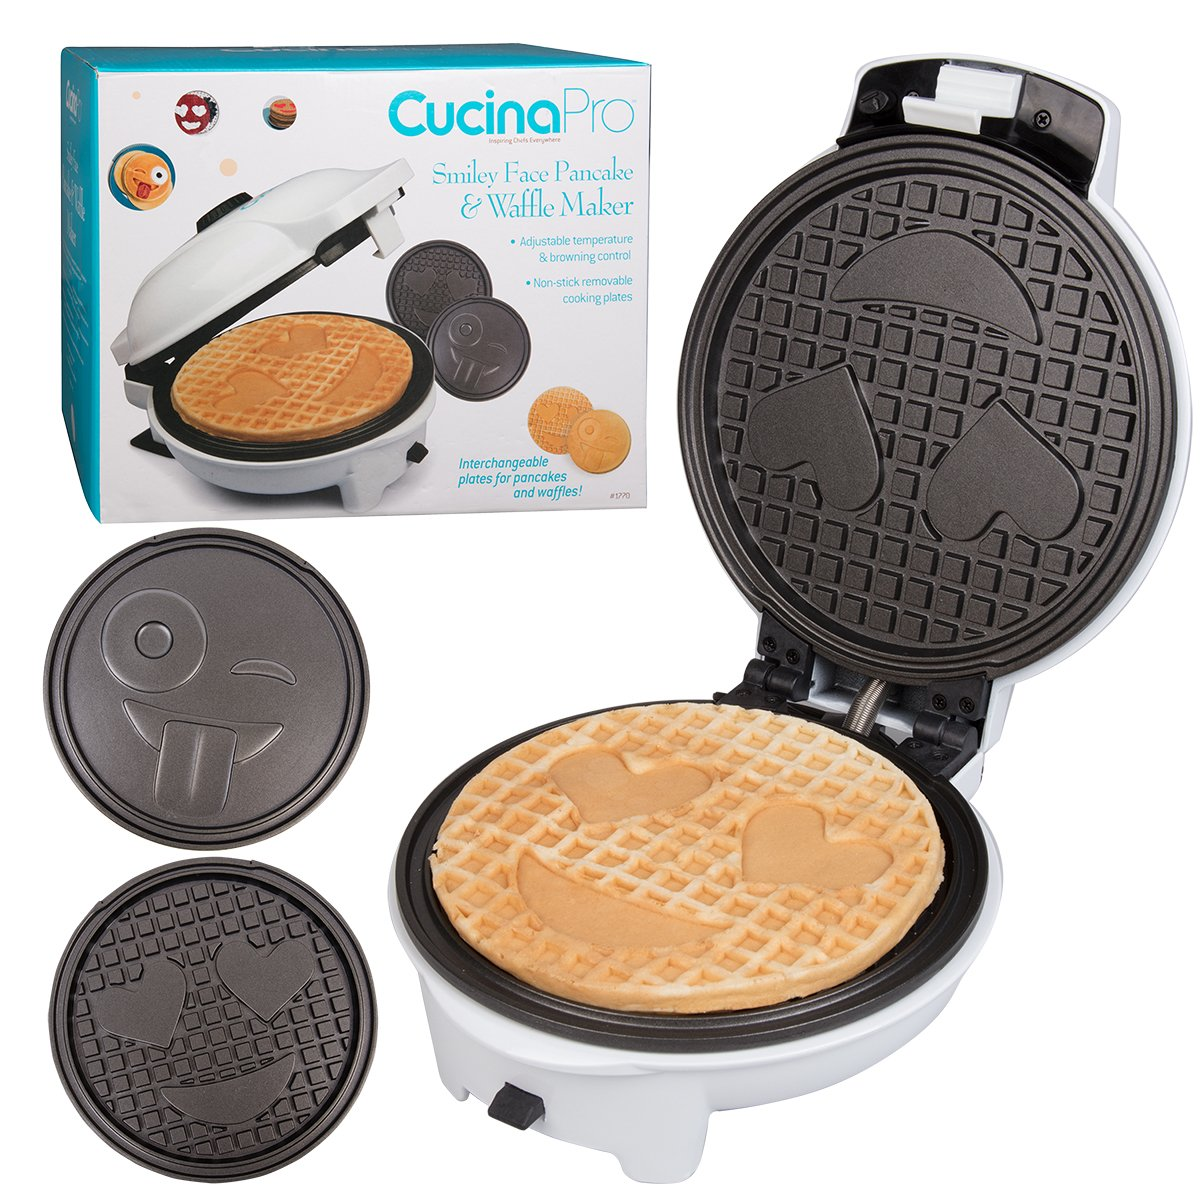 Emoji Waffler & Pancake Maker w Interchangeable Plates - Choose either 8'' Diameter Smiley Face Waffles OR Pan Cakes - Non-stick Electric Griddle Iron